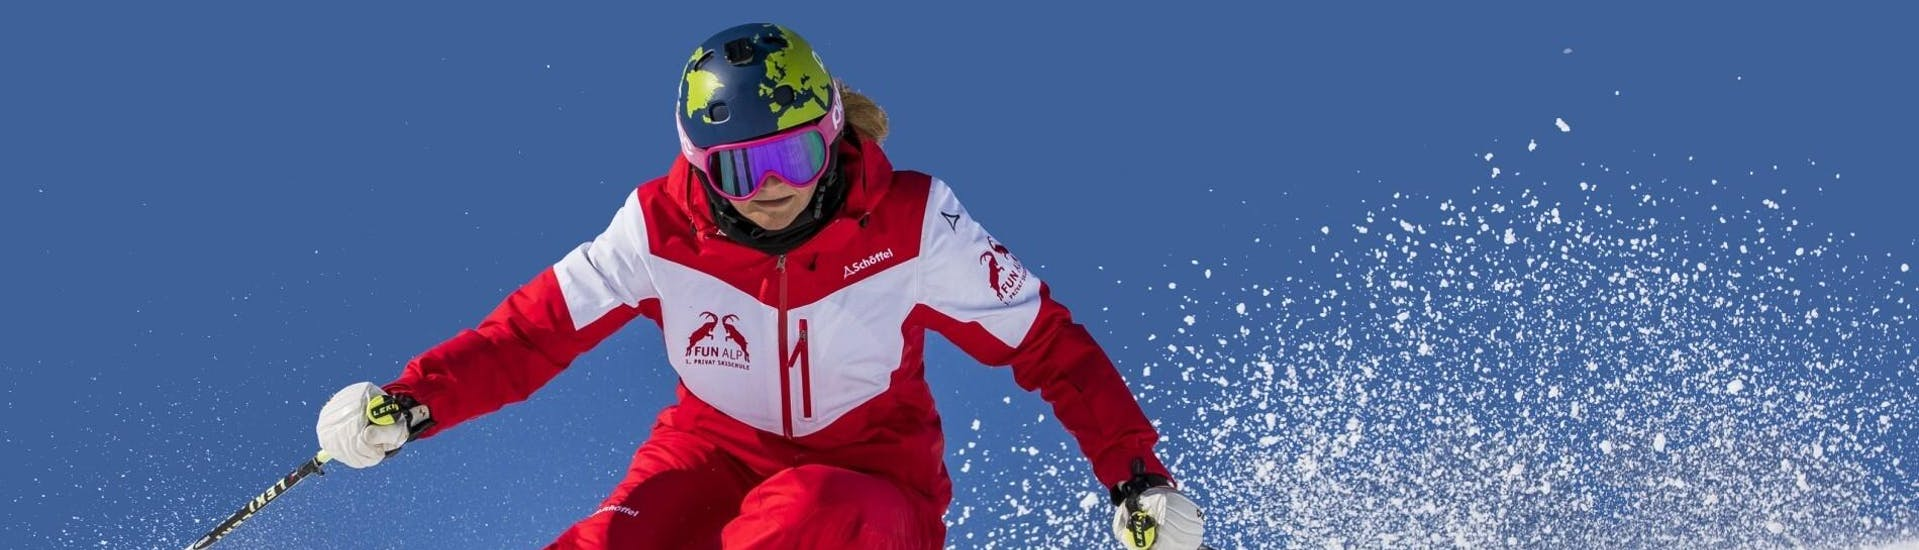 private-ski-lesson-for-adults-of-all-levels-privatskischule-kleinwalsertal-riezlern-hero